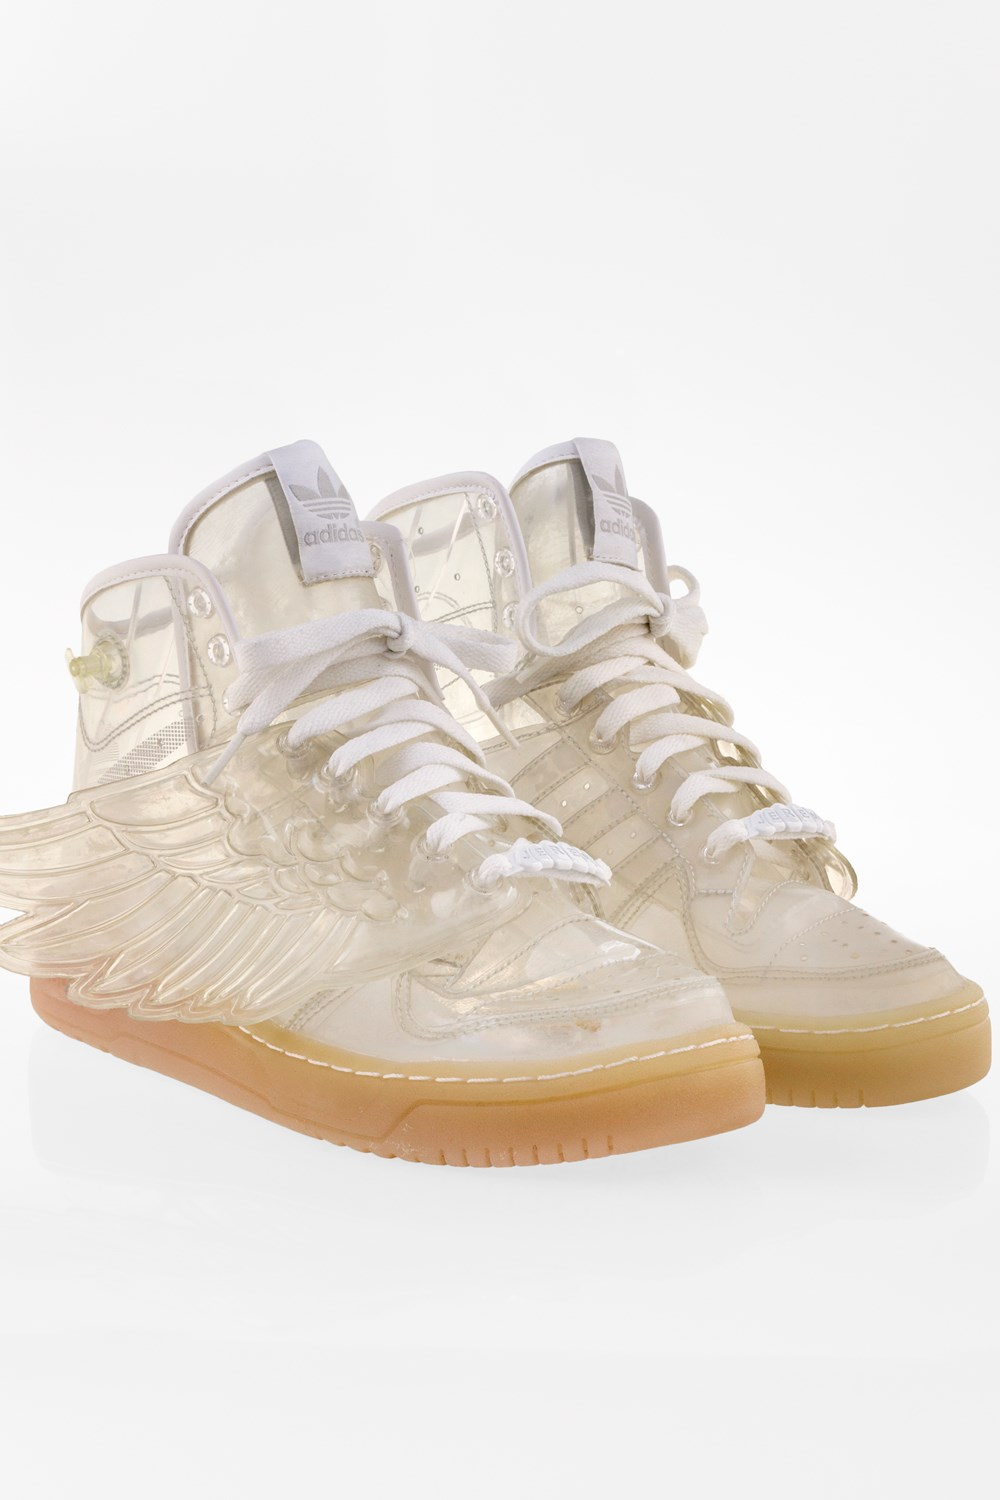 9f42e45f324e Transparent Sneakers with Wings   Size  8.5 UK - Fit  42.5